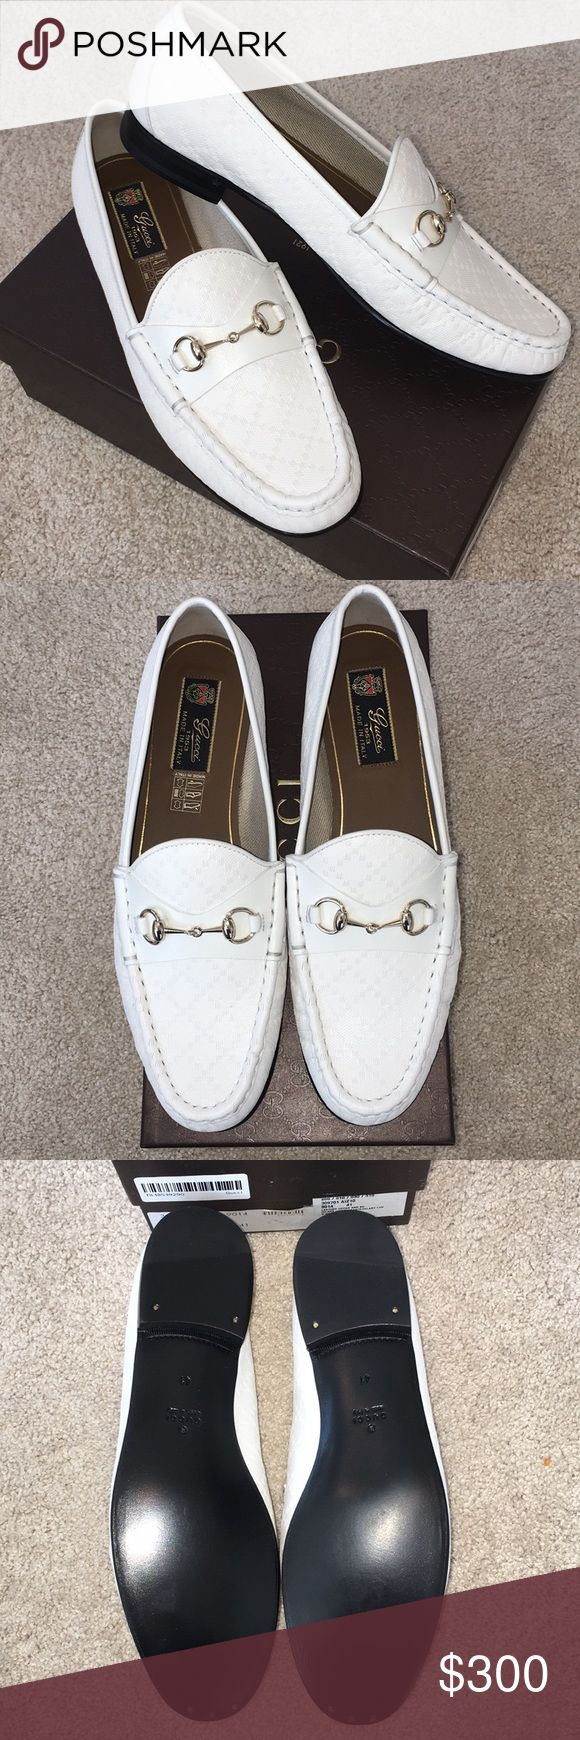 New Gucci White horse bit loafers NWT white Gucci loafers. Perfect condition. Just a half size too big on me and can't return. Perfect for spring and summer! Reasonable offers considered! Gucci Shoes Flats & Loafers